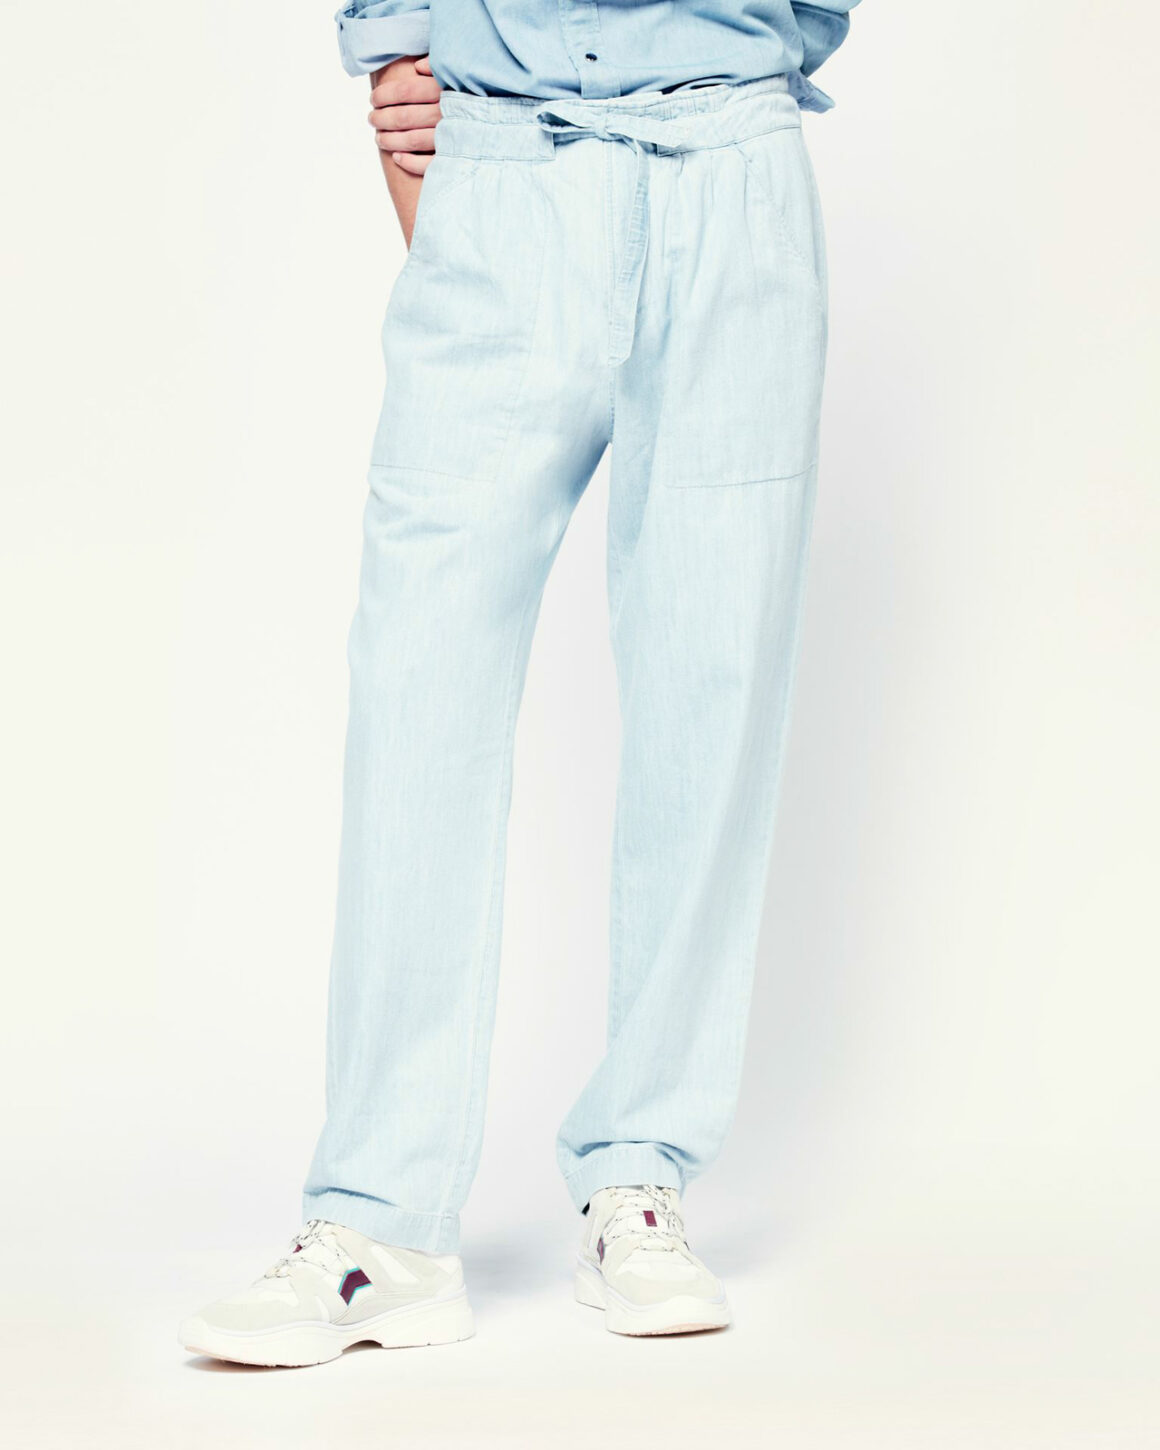 Jacquemus_SS21_Pastell